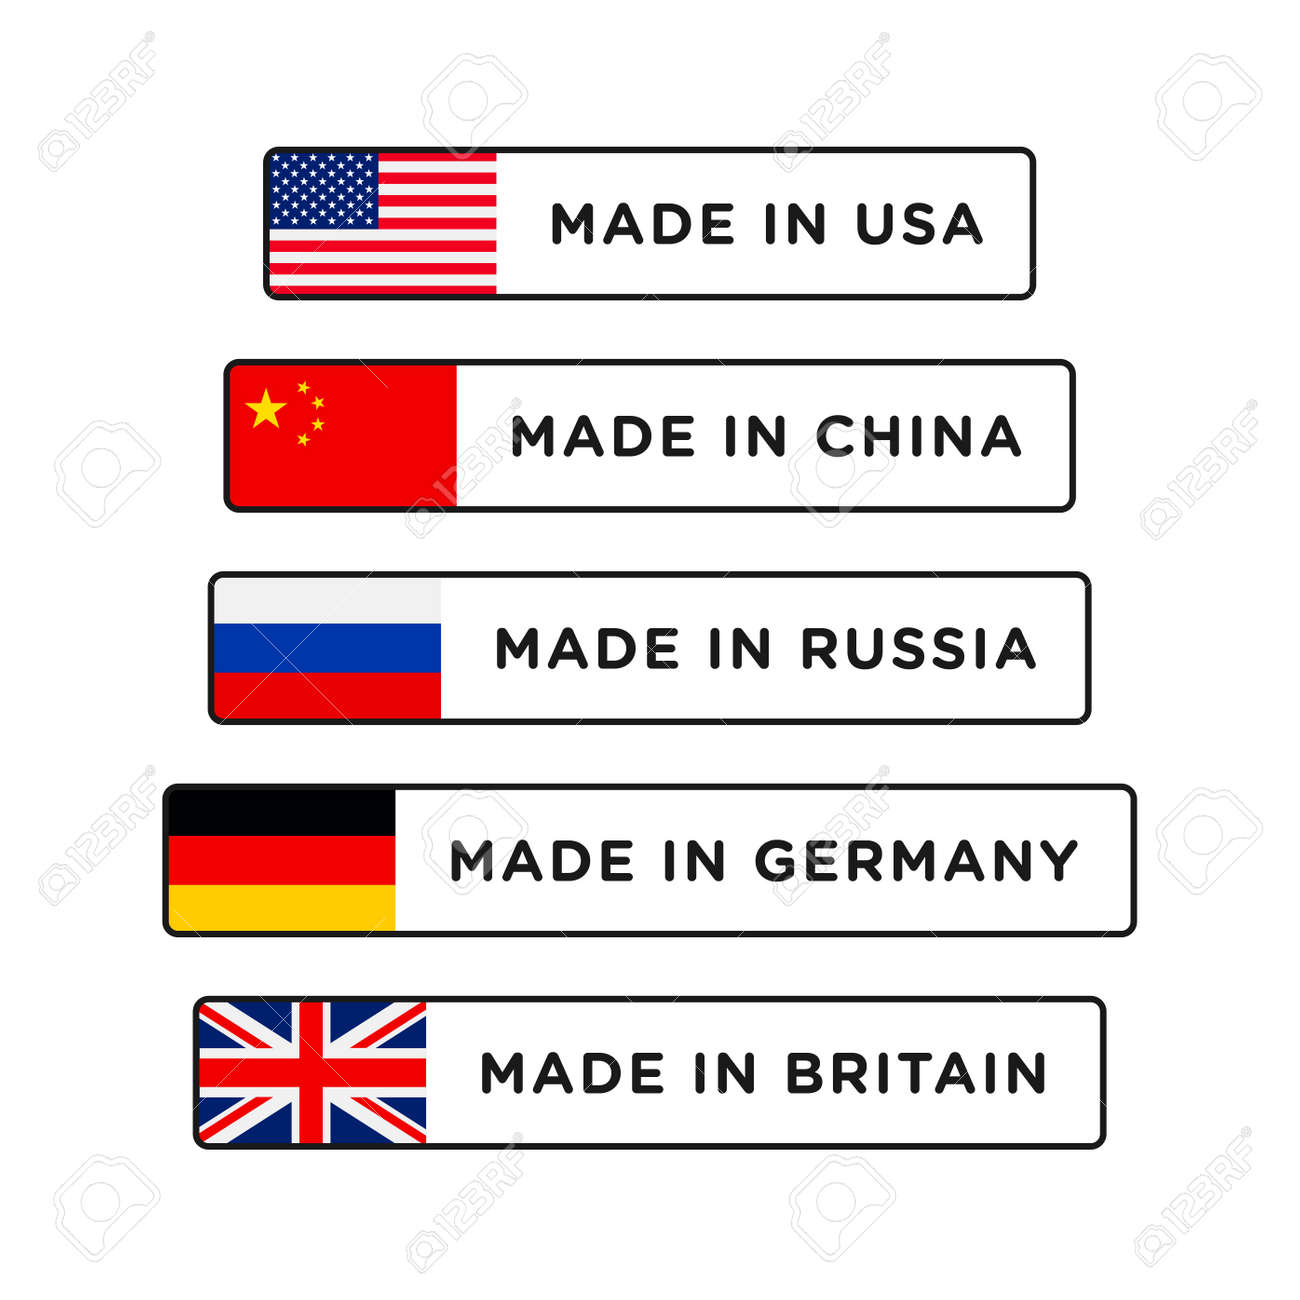 Made in USA, China, Britain, Germany and Russia badge with flag. Made in banner isolated on white background - 162381775